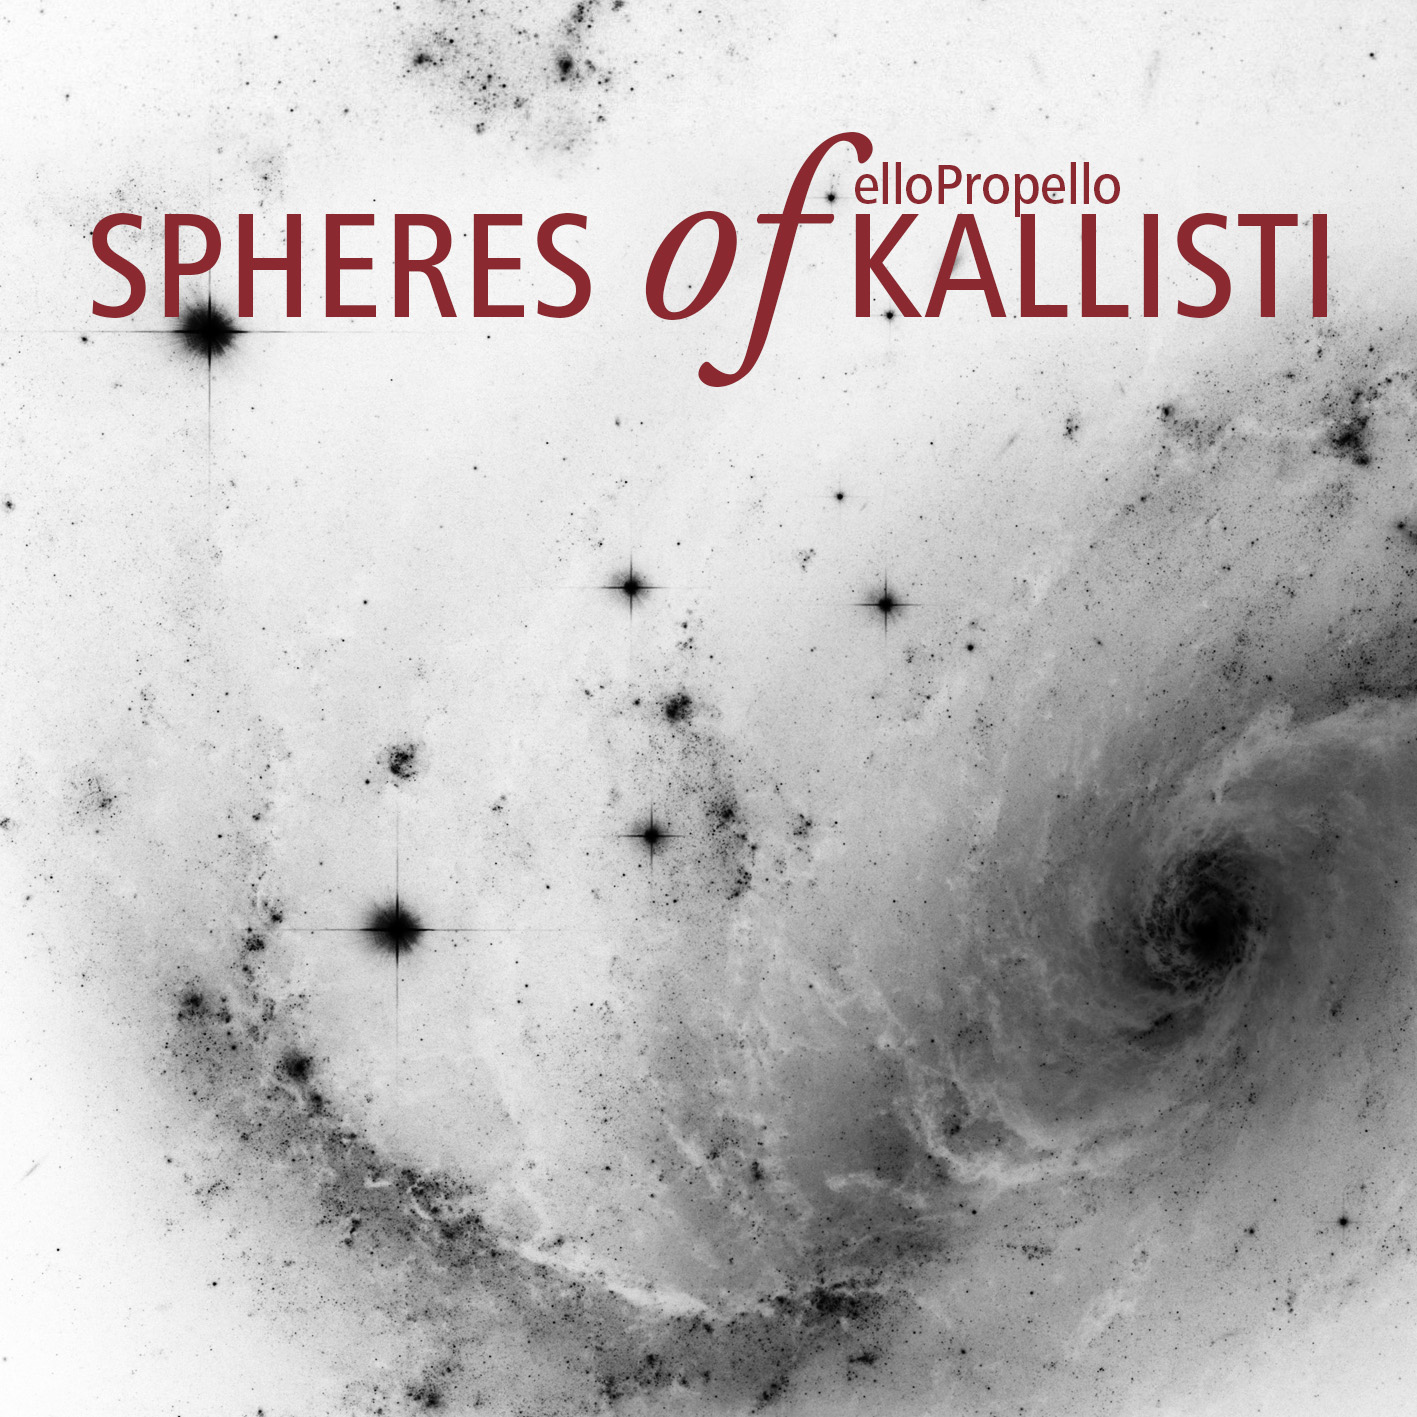 Spheres of Kallisti (2016)